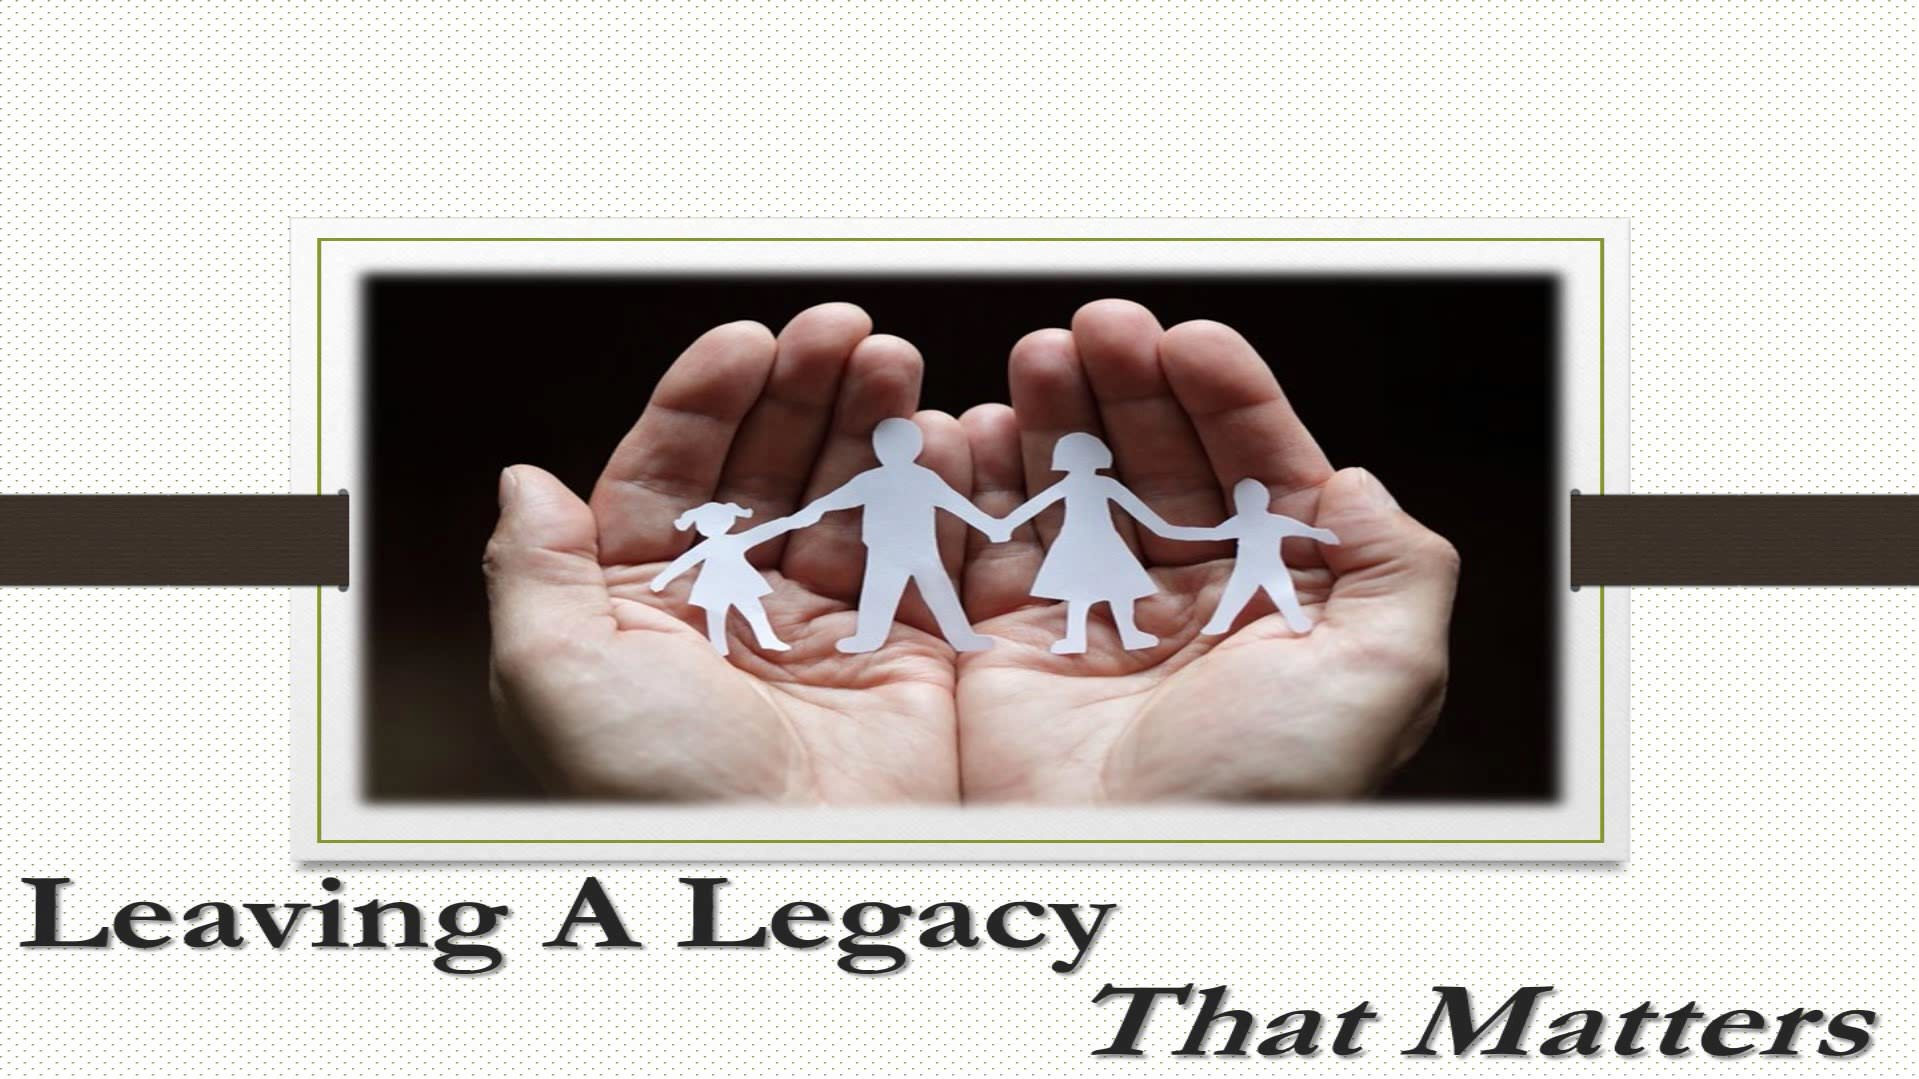 Leaving A Legacy That Matters